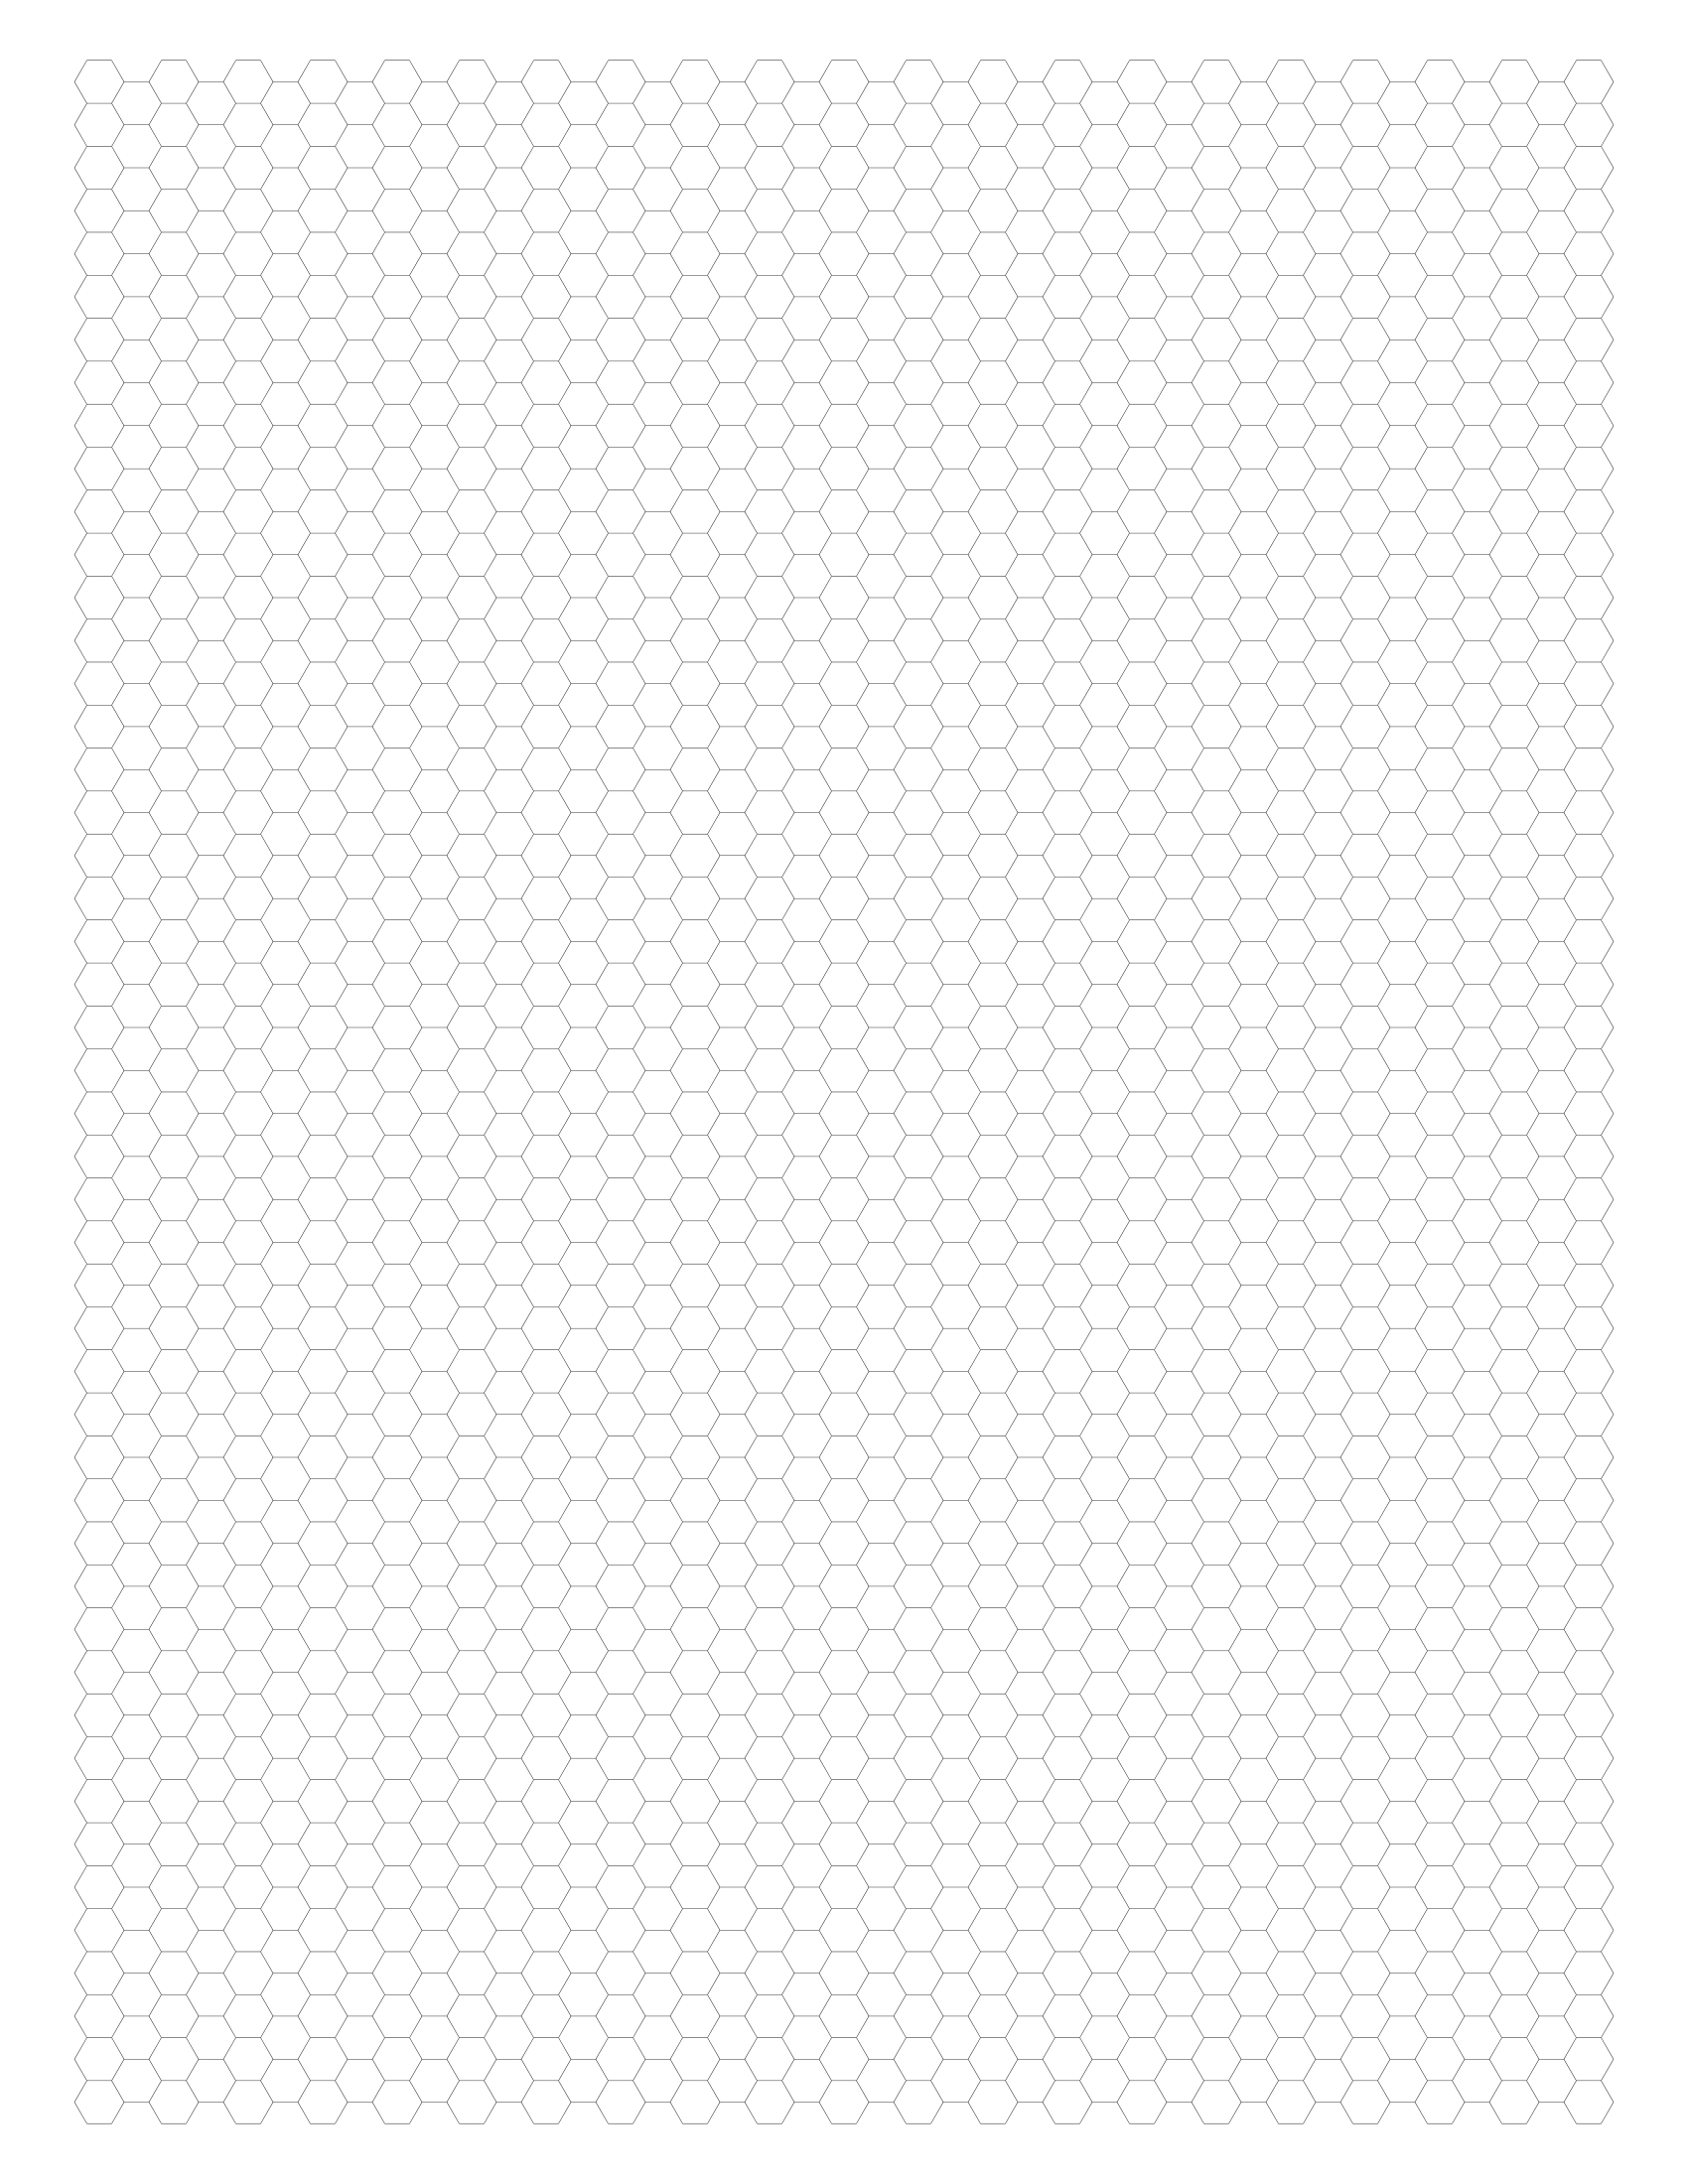 picture regarding Hex Paper Printable identify No cost On the net Graph Paper / Hexagonal